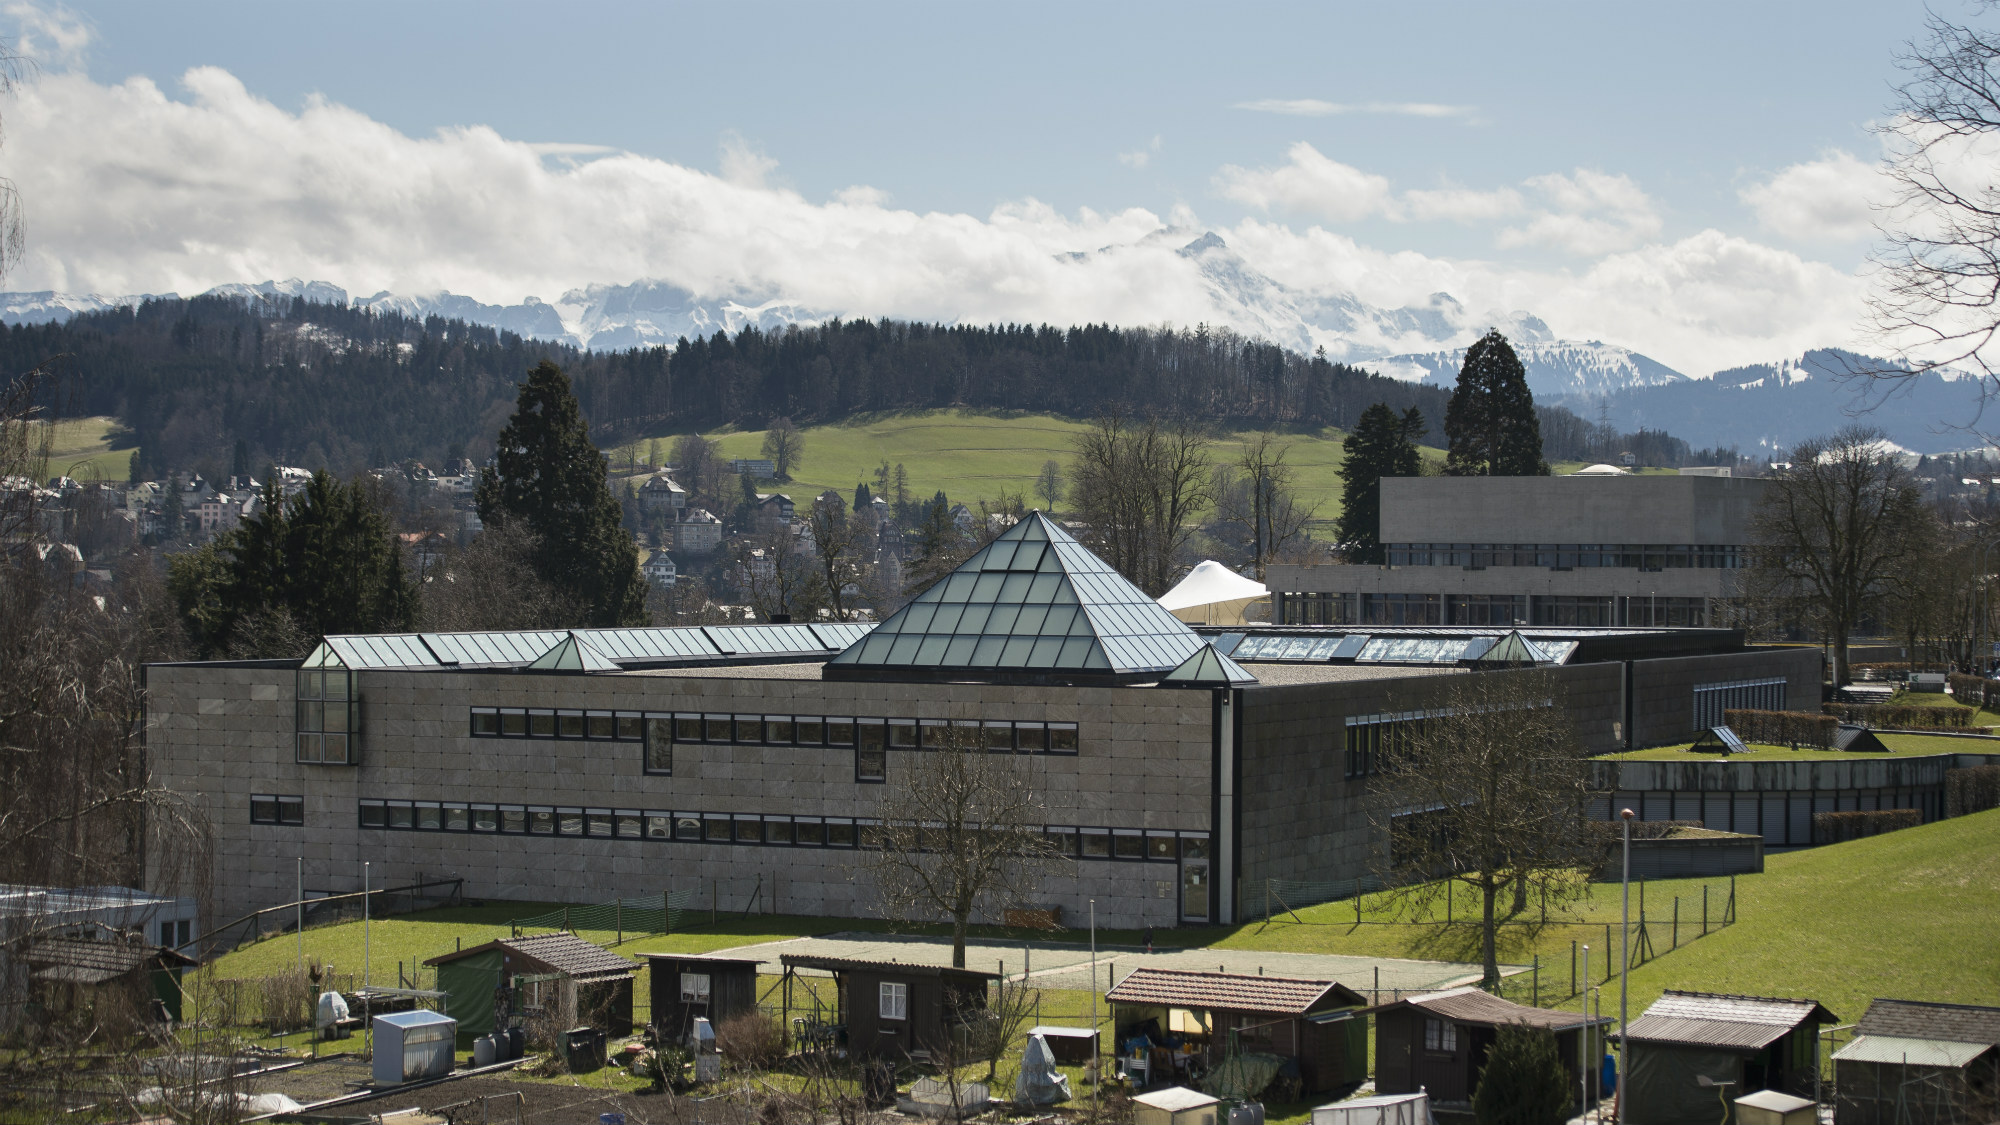 Photograph of the Library Building of the University of St.Gallen (HSG) with the mountains in the background